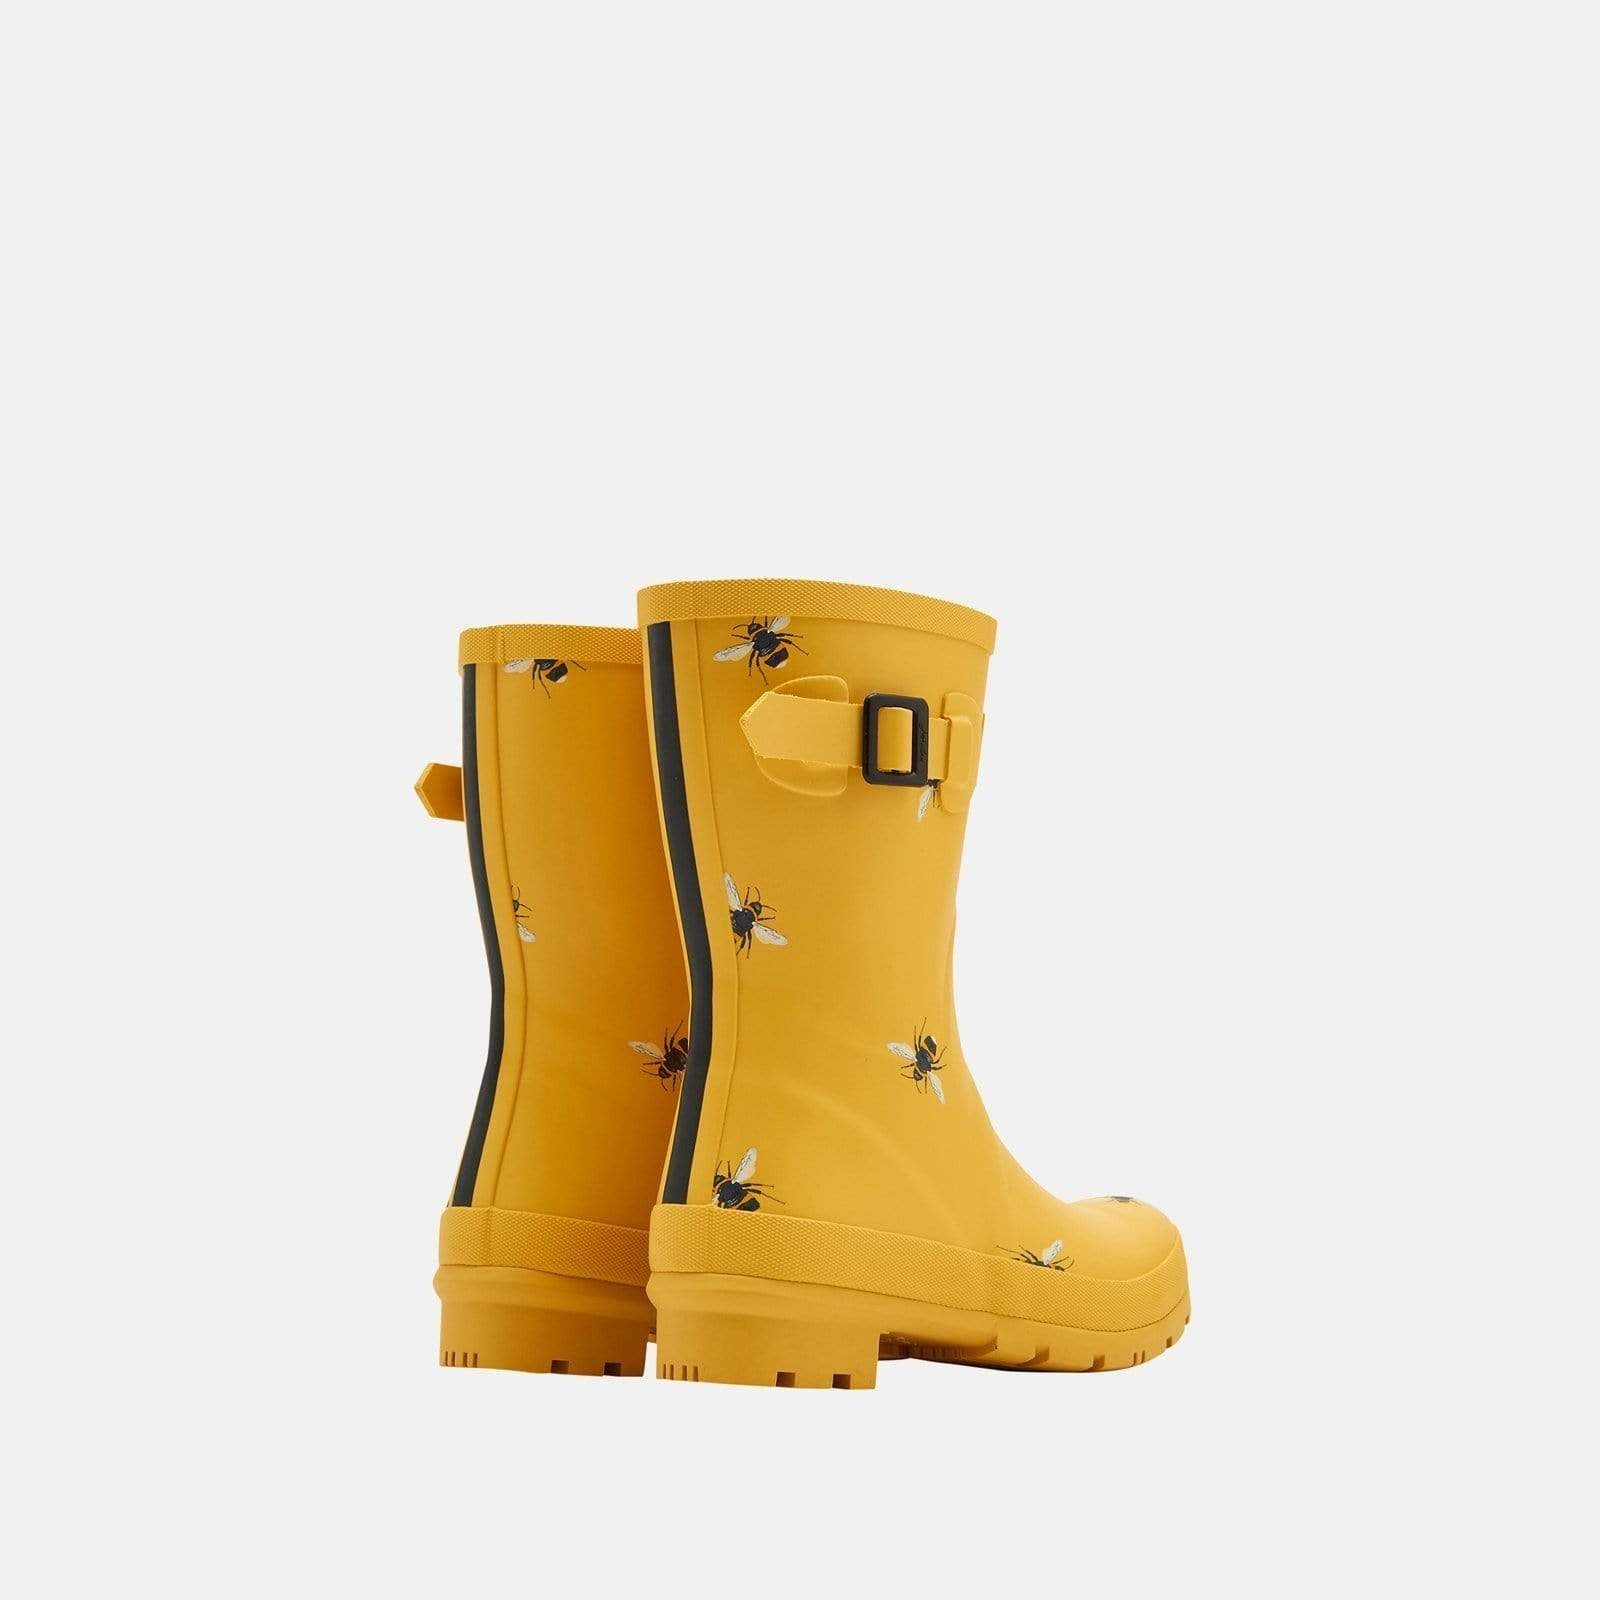 Joules Welly Molly Welly Gold Botantical Bees